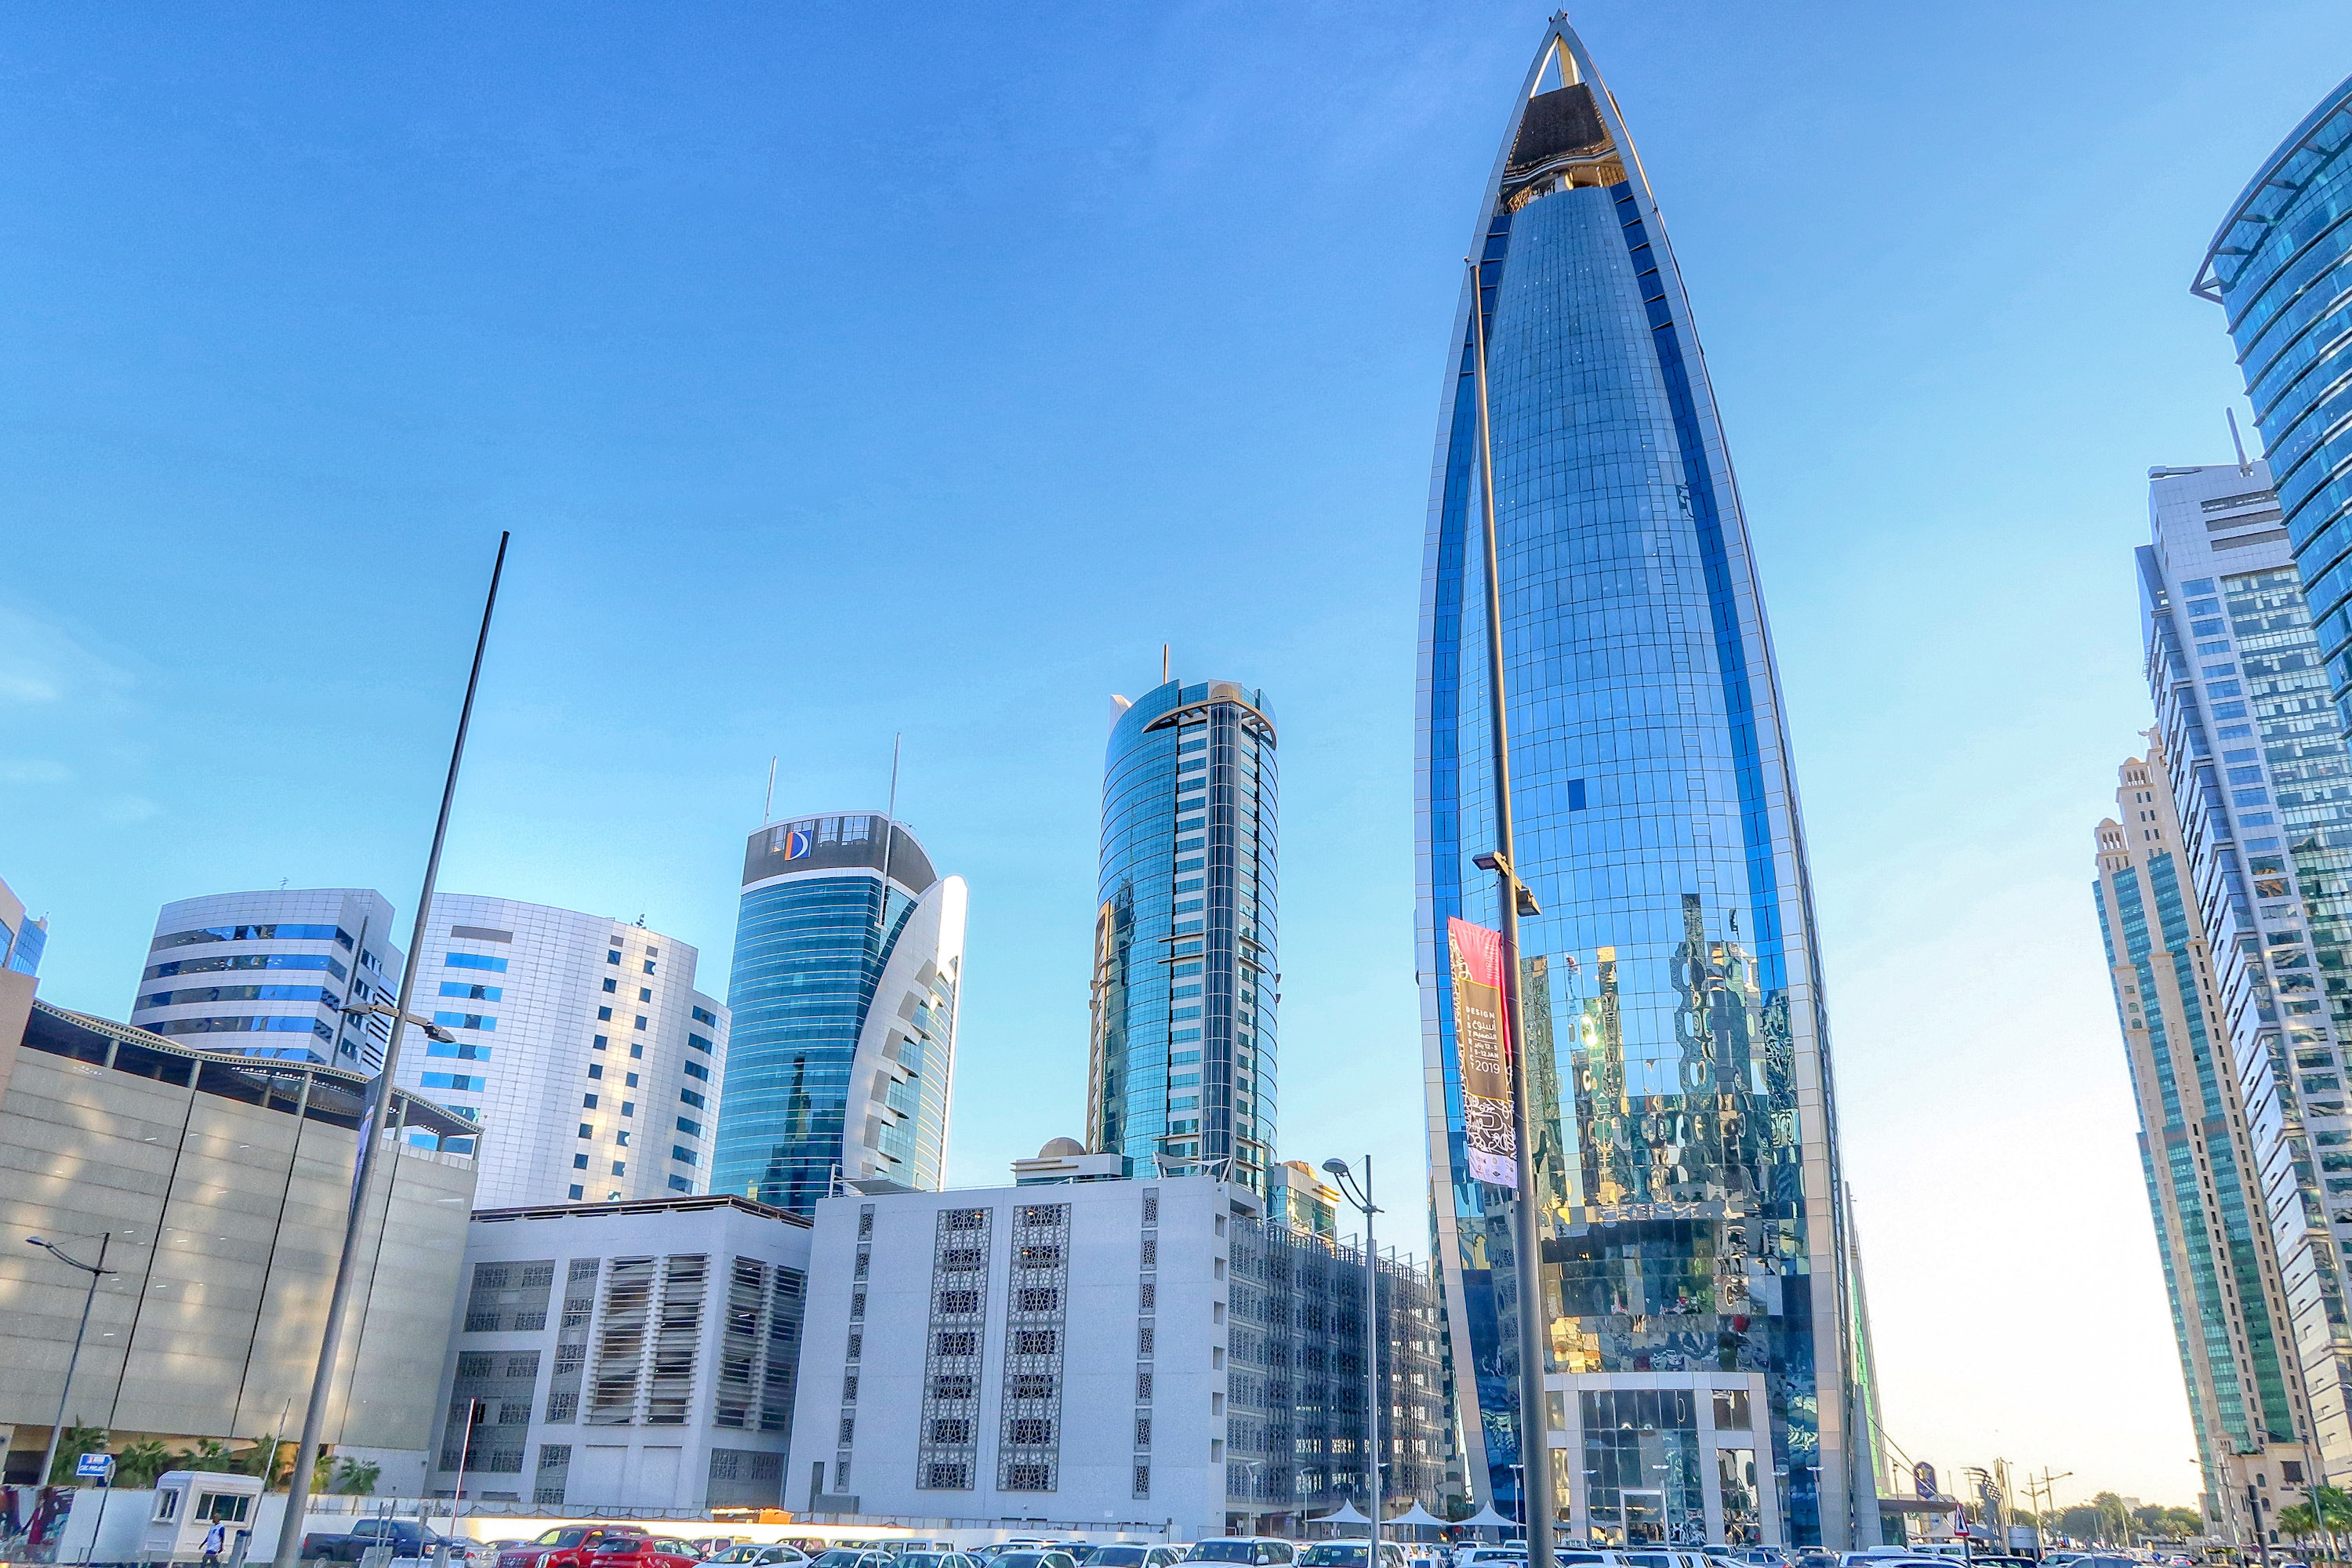 Design District Skyline | Visit Qatar | Doha, the capital of Qatar is located in the Middle East and the World Cup 2022 location. Find out how I spent 4 days on my visit to Qatar | Travel Guide & Tips | Elle Blonde Luxury Lifestyle Destination Blog